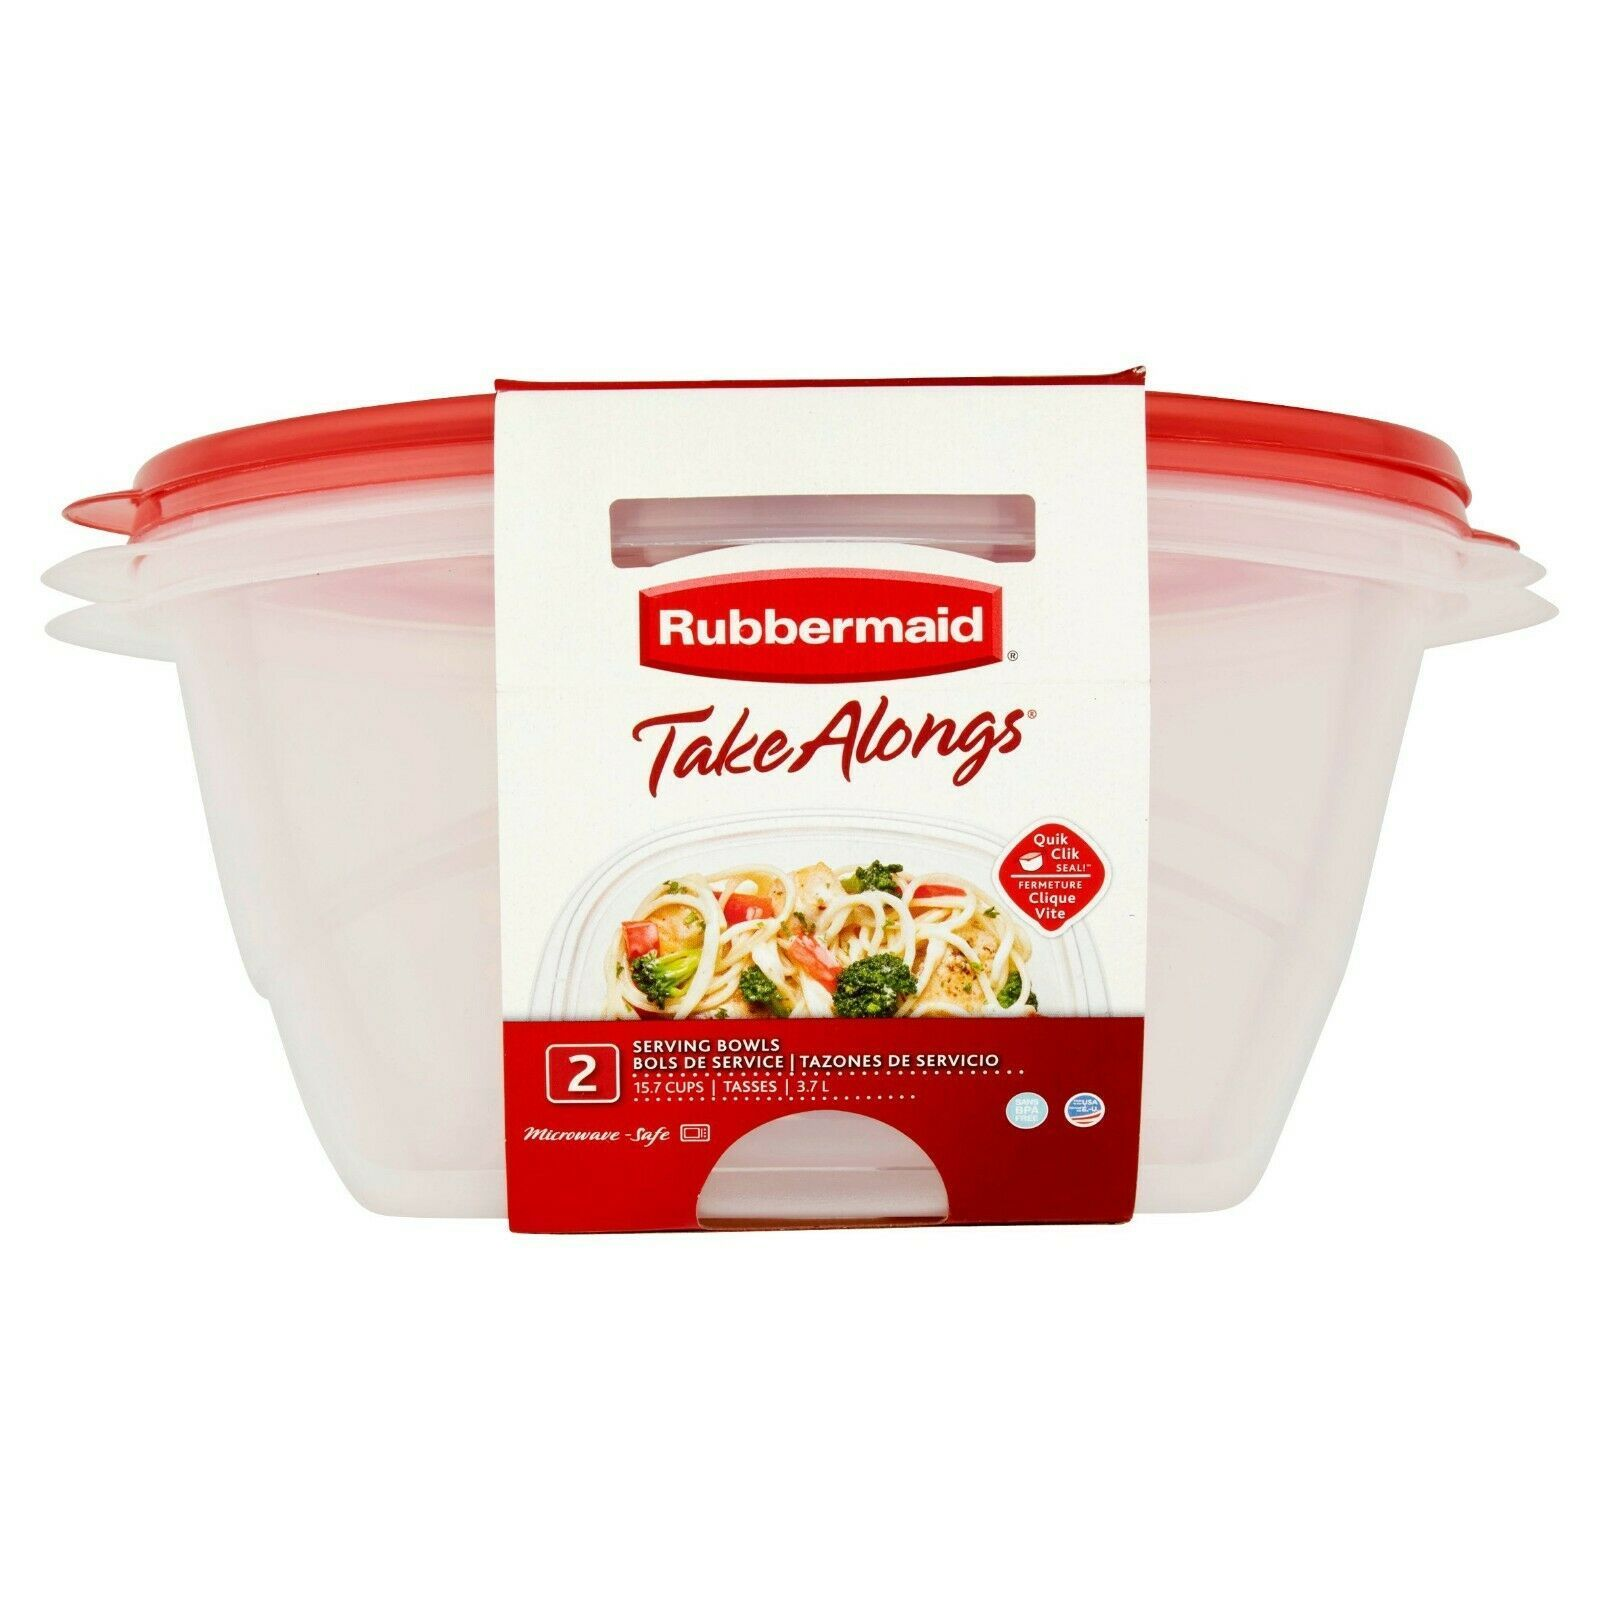 Rubbermaid TakeAlongs 15.7 Cups Food Storage 2 Bowls W Lids Quik Clik Seal NEW